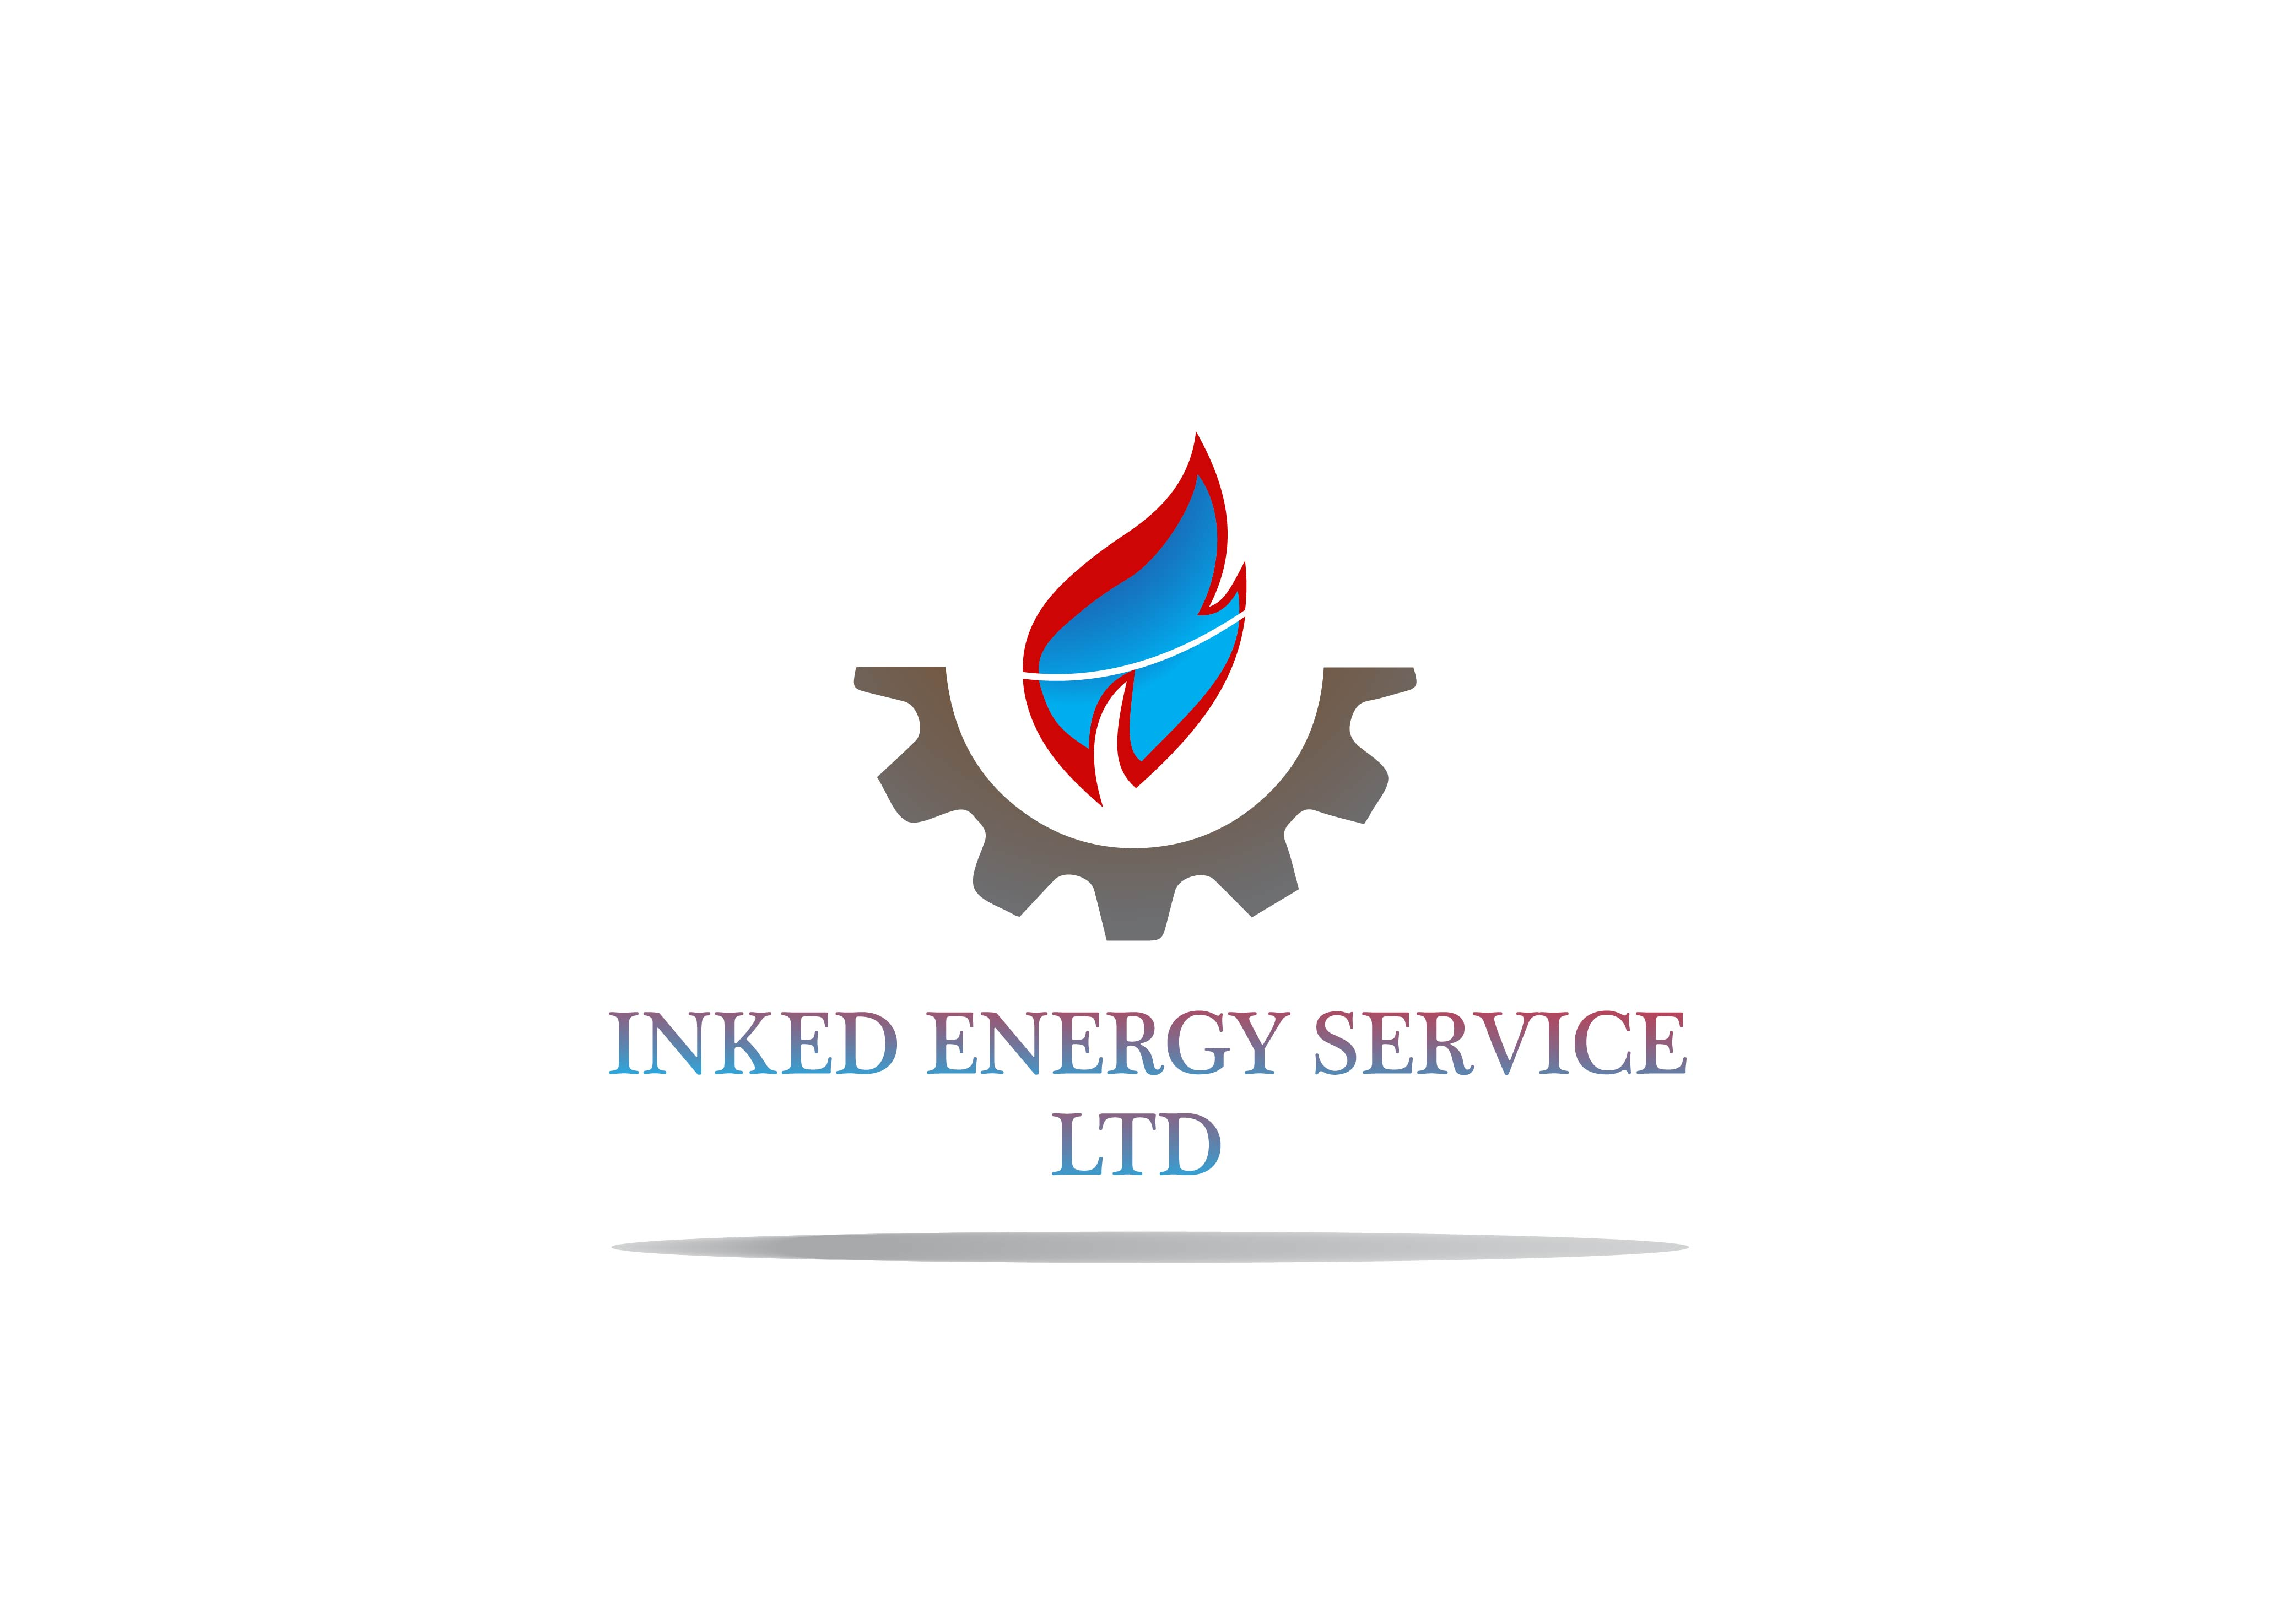 Logo Design by Bilal Baloch - Entry No. 25 in the Logo Design Contest Creative Logo Design for INKED ENERGY SERVICES LTD.